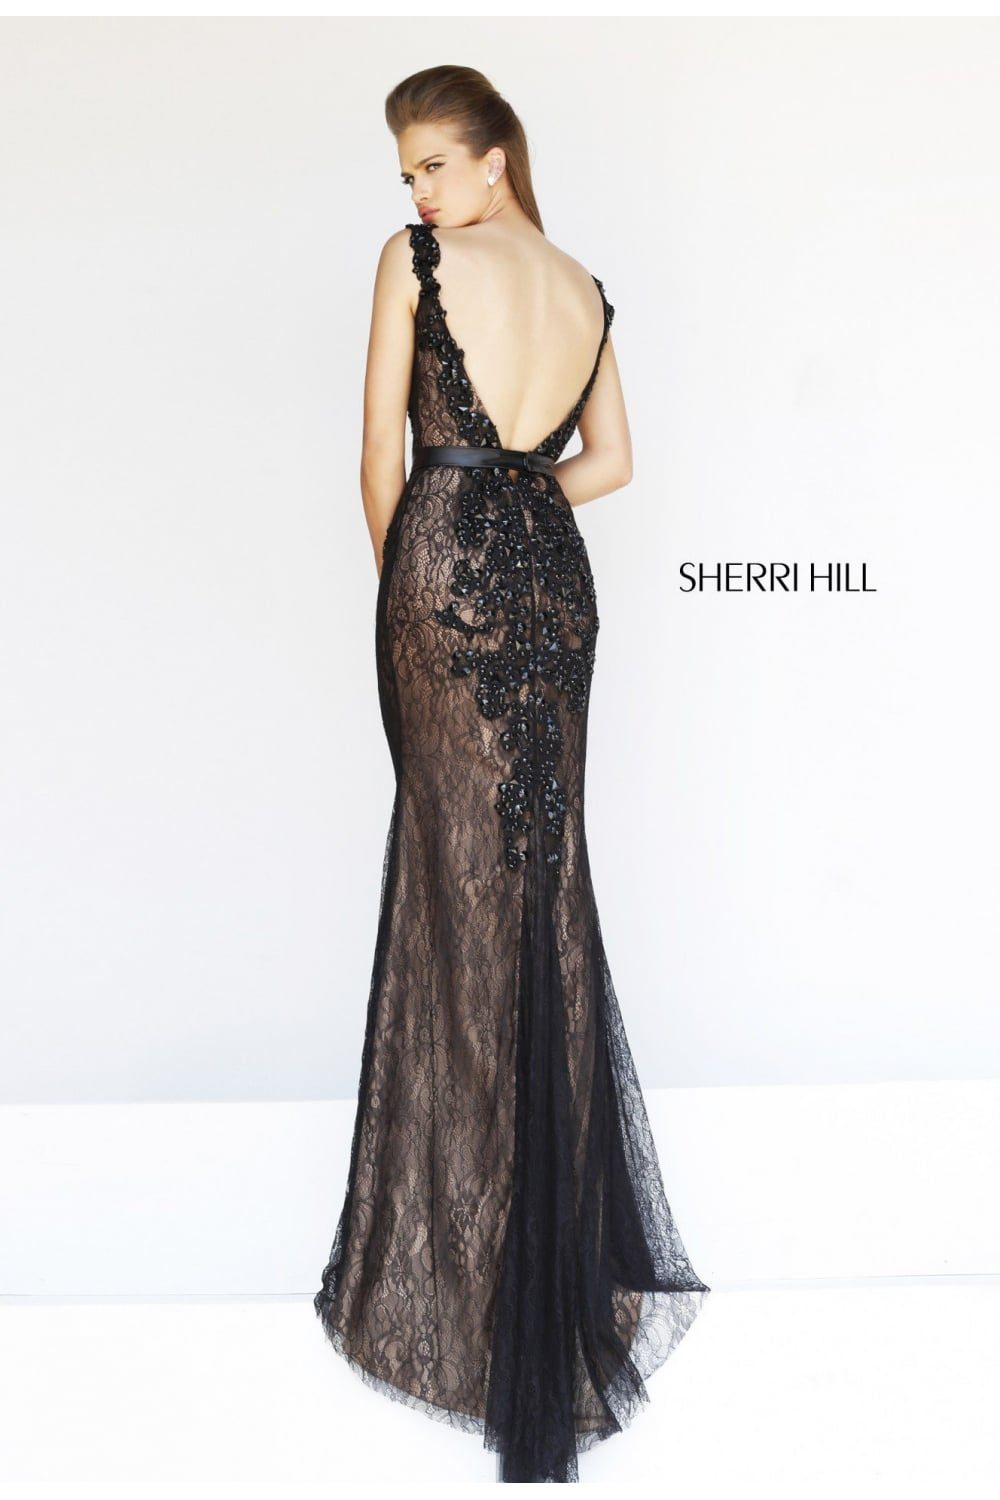 Sherri Hill 4308 Prom Dress